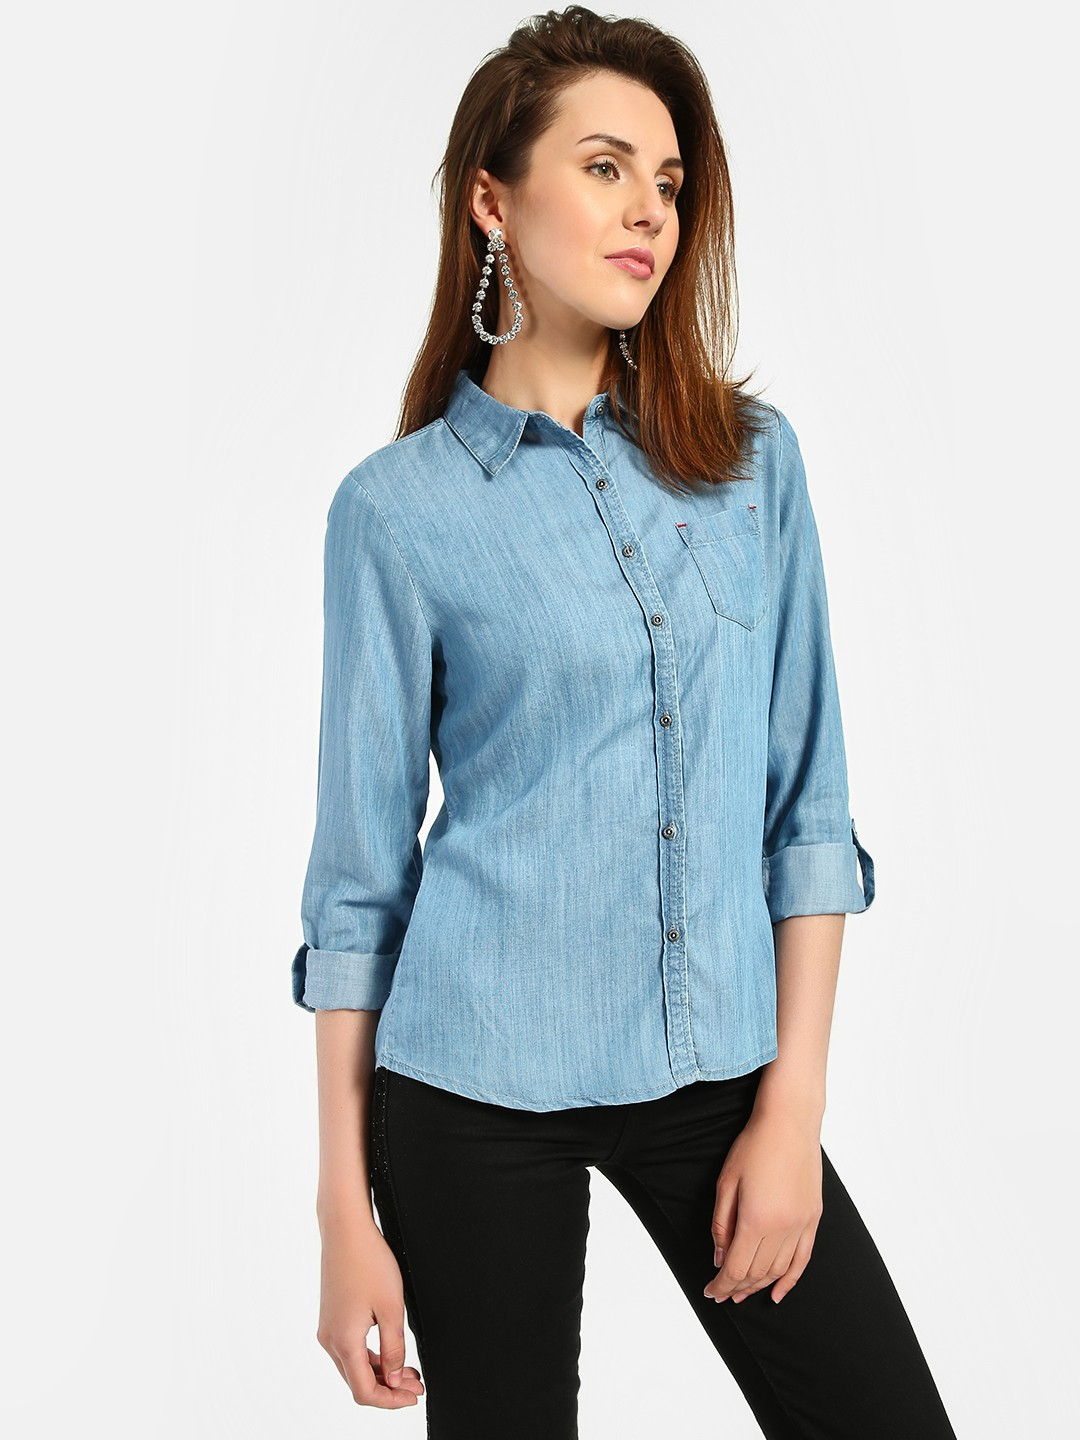 Lee Cooper Blue Basic Denim Shirt 1